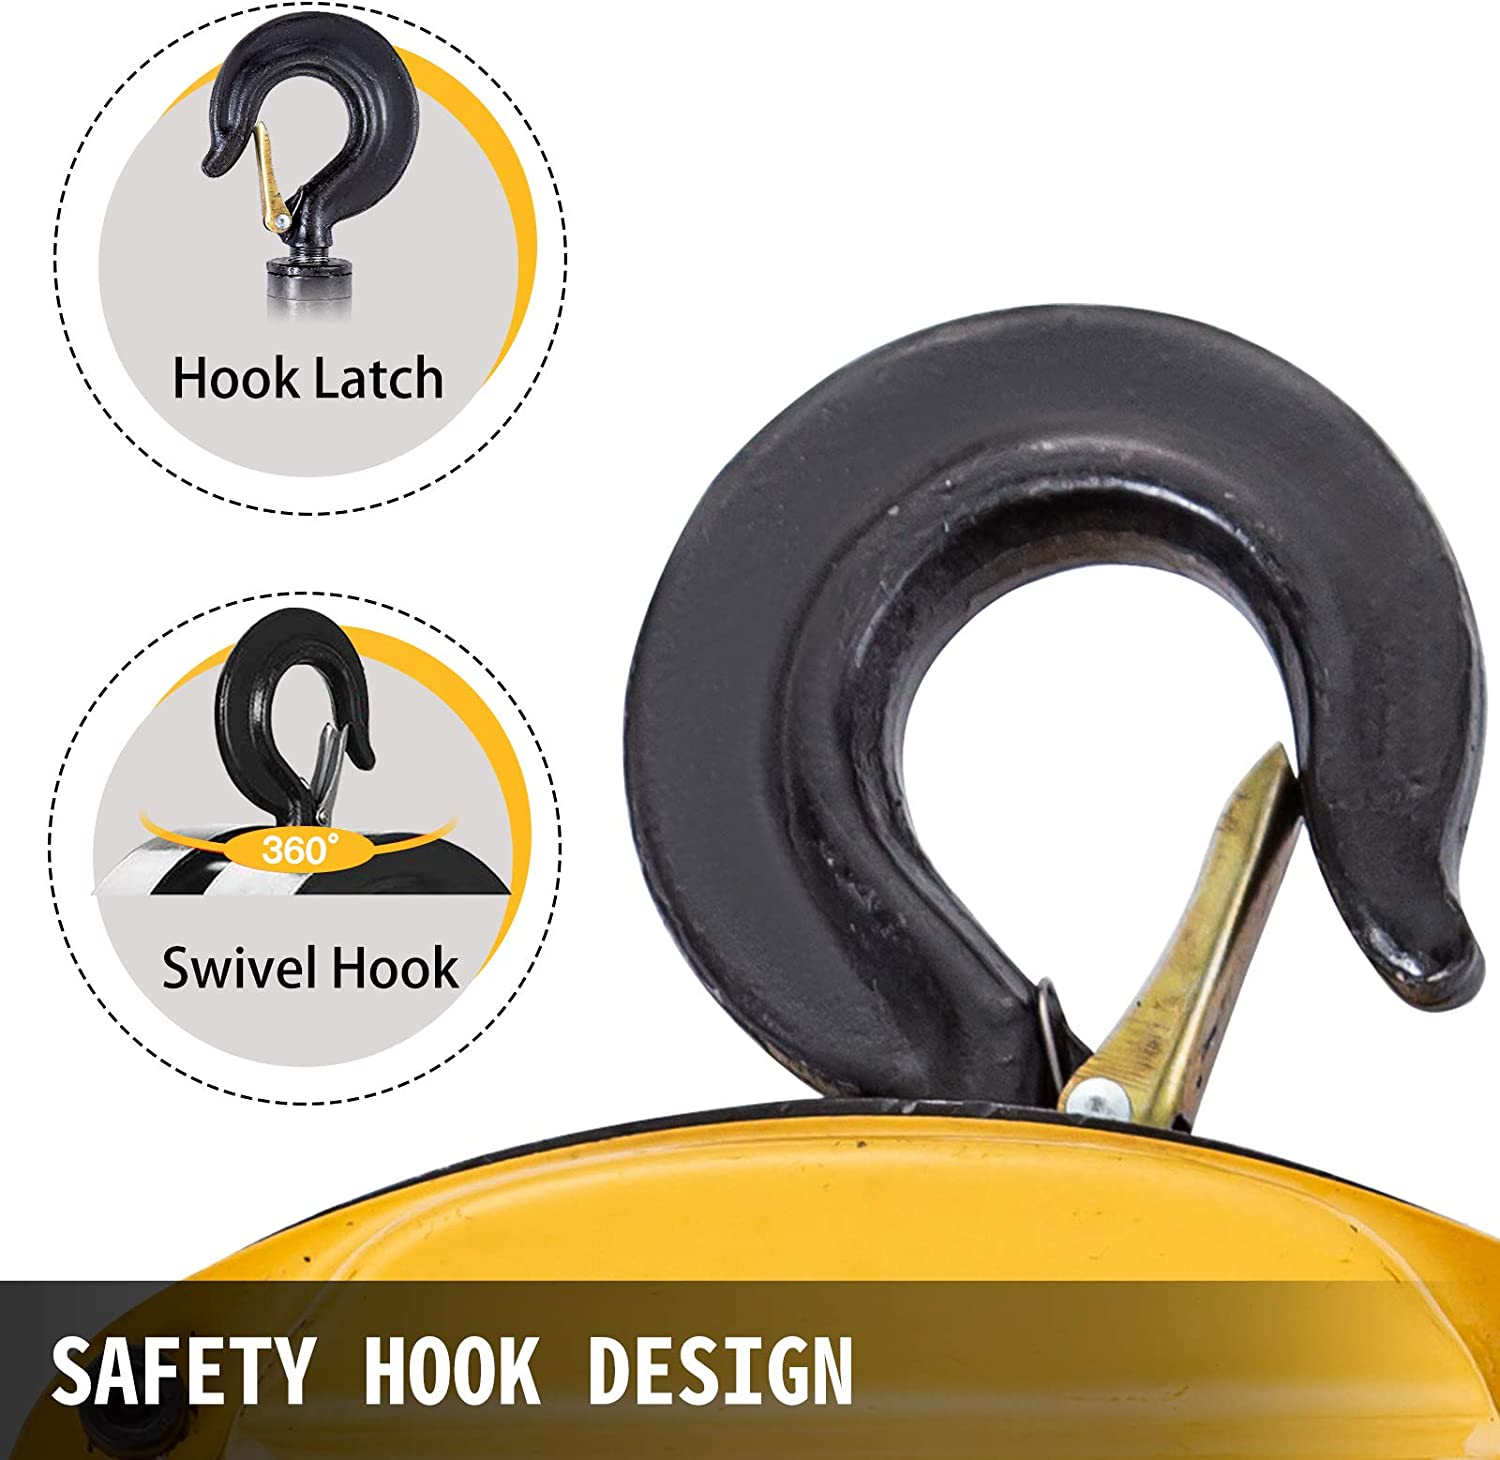 BestEquip Chain Hoist 2200lbs//1ton Chain Block Hoist Manual Chain Hoist 3m//10ft Block Chain Hand Chain Lifting Hoist w//Two Hooks Chain Pulley Tackle Hoist Winch Lifting Pulling Equipment Yellow